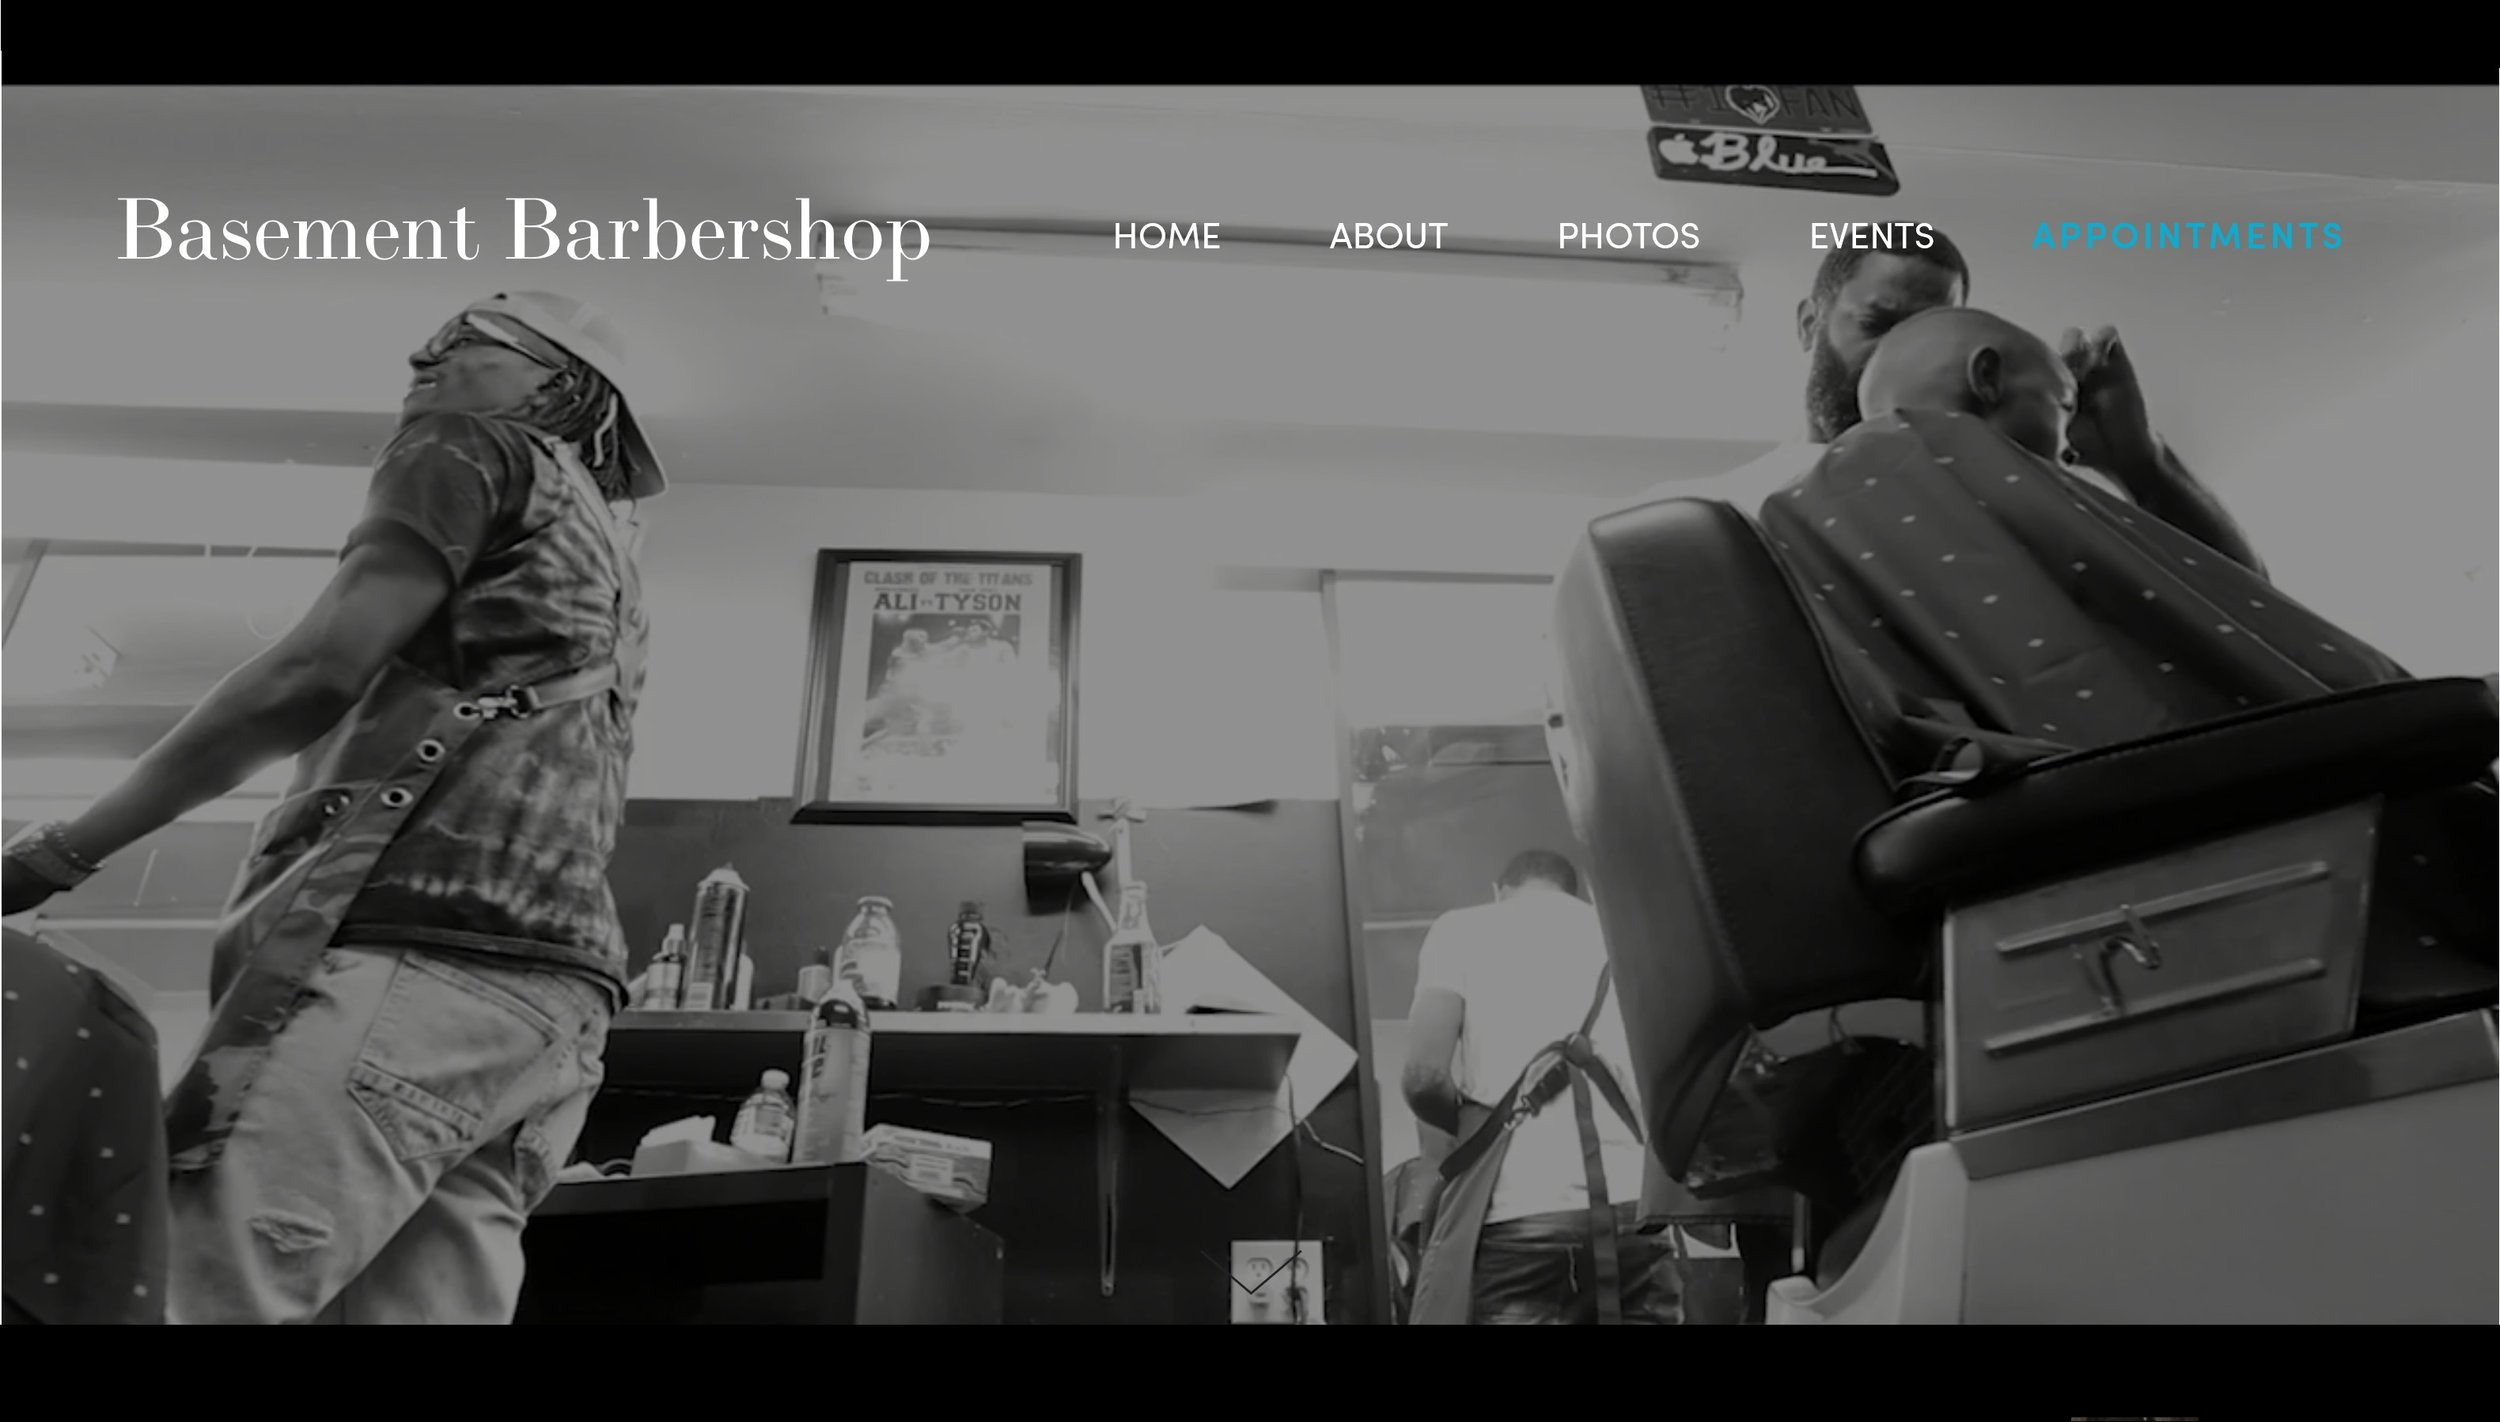 Basement Barbershop - The Basement Barbershop offers a wide array of hair care services for men, women, and children. Our barbers and stylist are trained to groom any type of hair texture. No matter if it's straight, curly, locked…